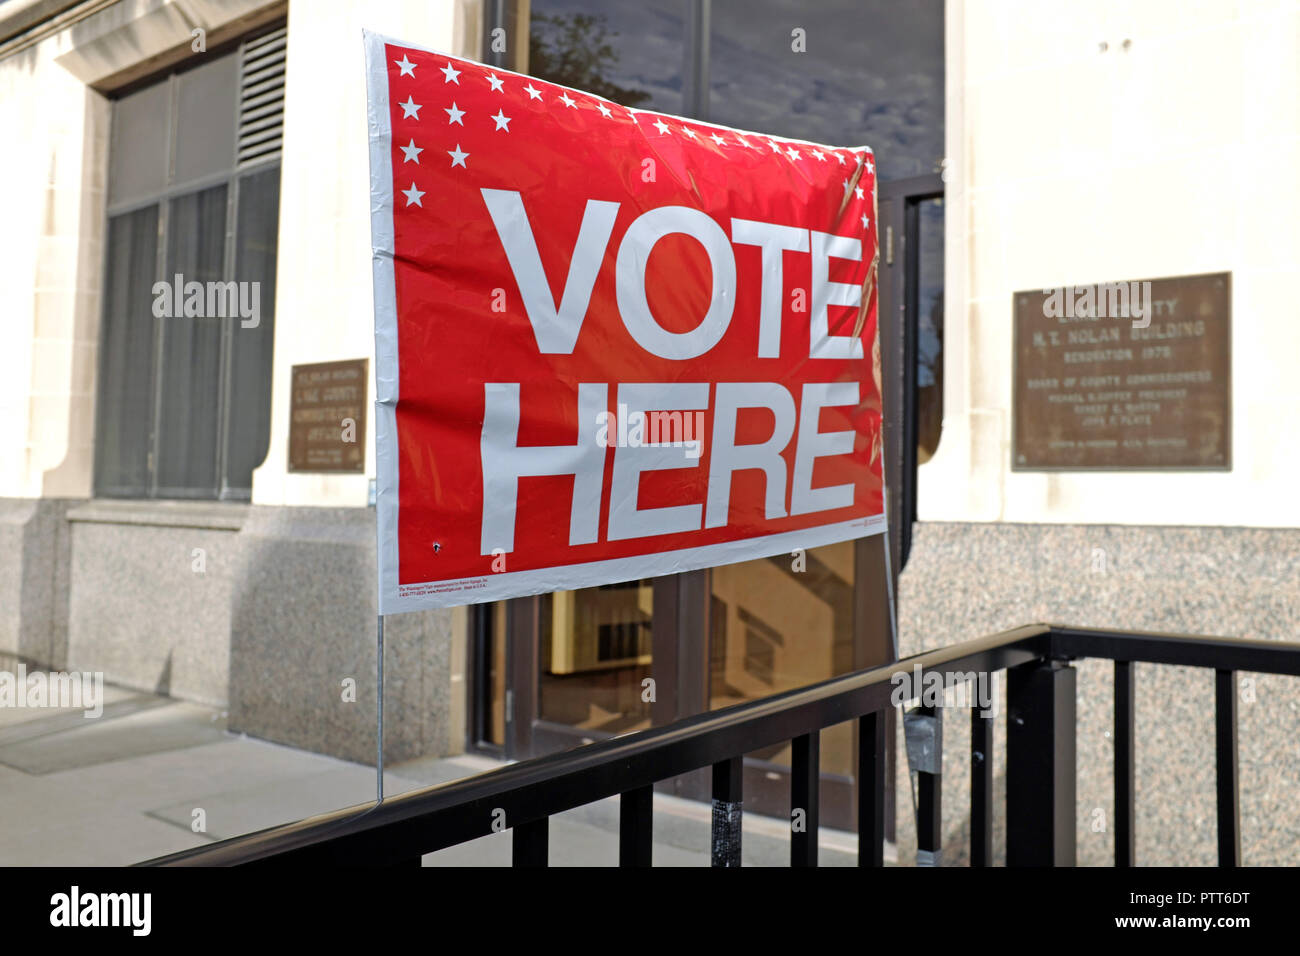 Painesville, Ohio, USA, 10th Oct, 2018.  A 'Vote Here' sign is prominently displayed at the entrance to the Lake County Board of Elections in Painesville, Ohio, USA, where early voting began today.  This is the first day for early voting in the 2018 general election.  People may vote at their county Board of Elections up through Election Day, November 6, 2018.  Credit: Mark Kanning/Alamy Live News. - Stock Image